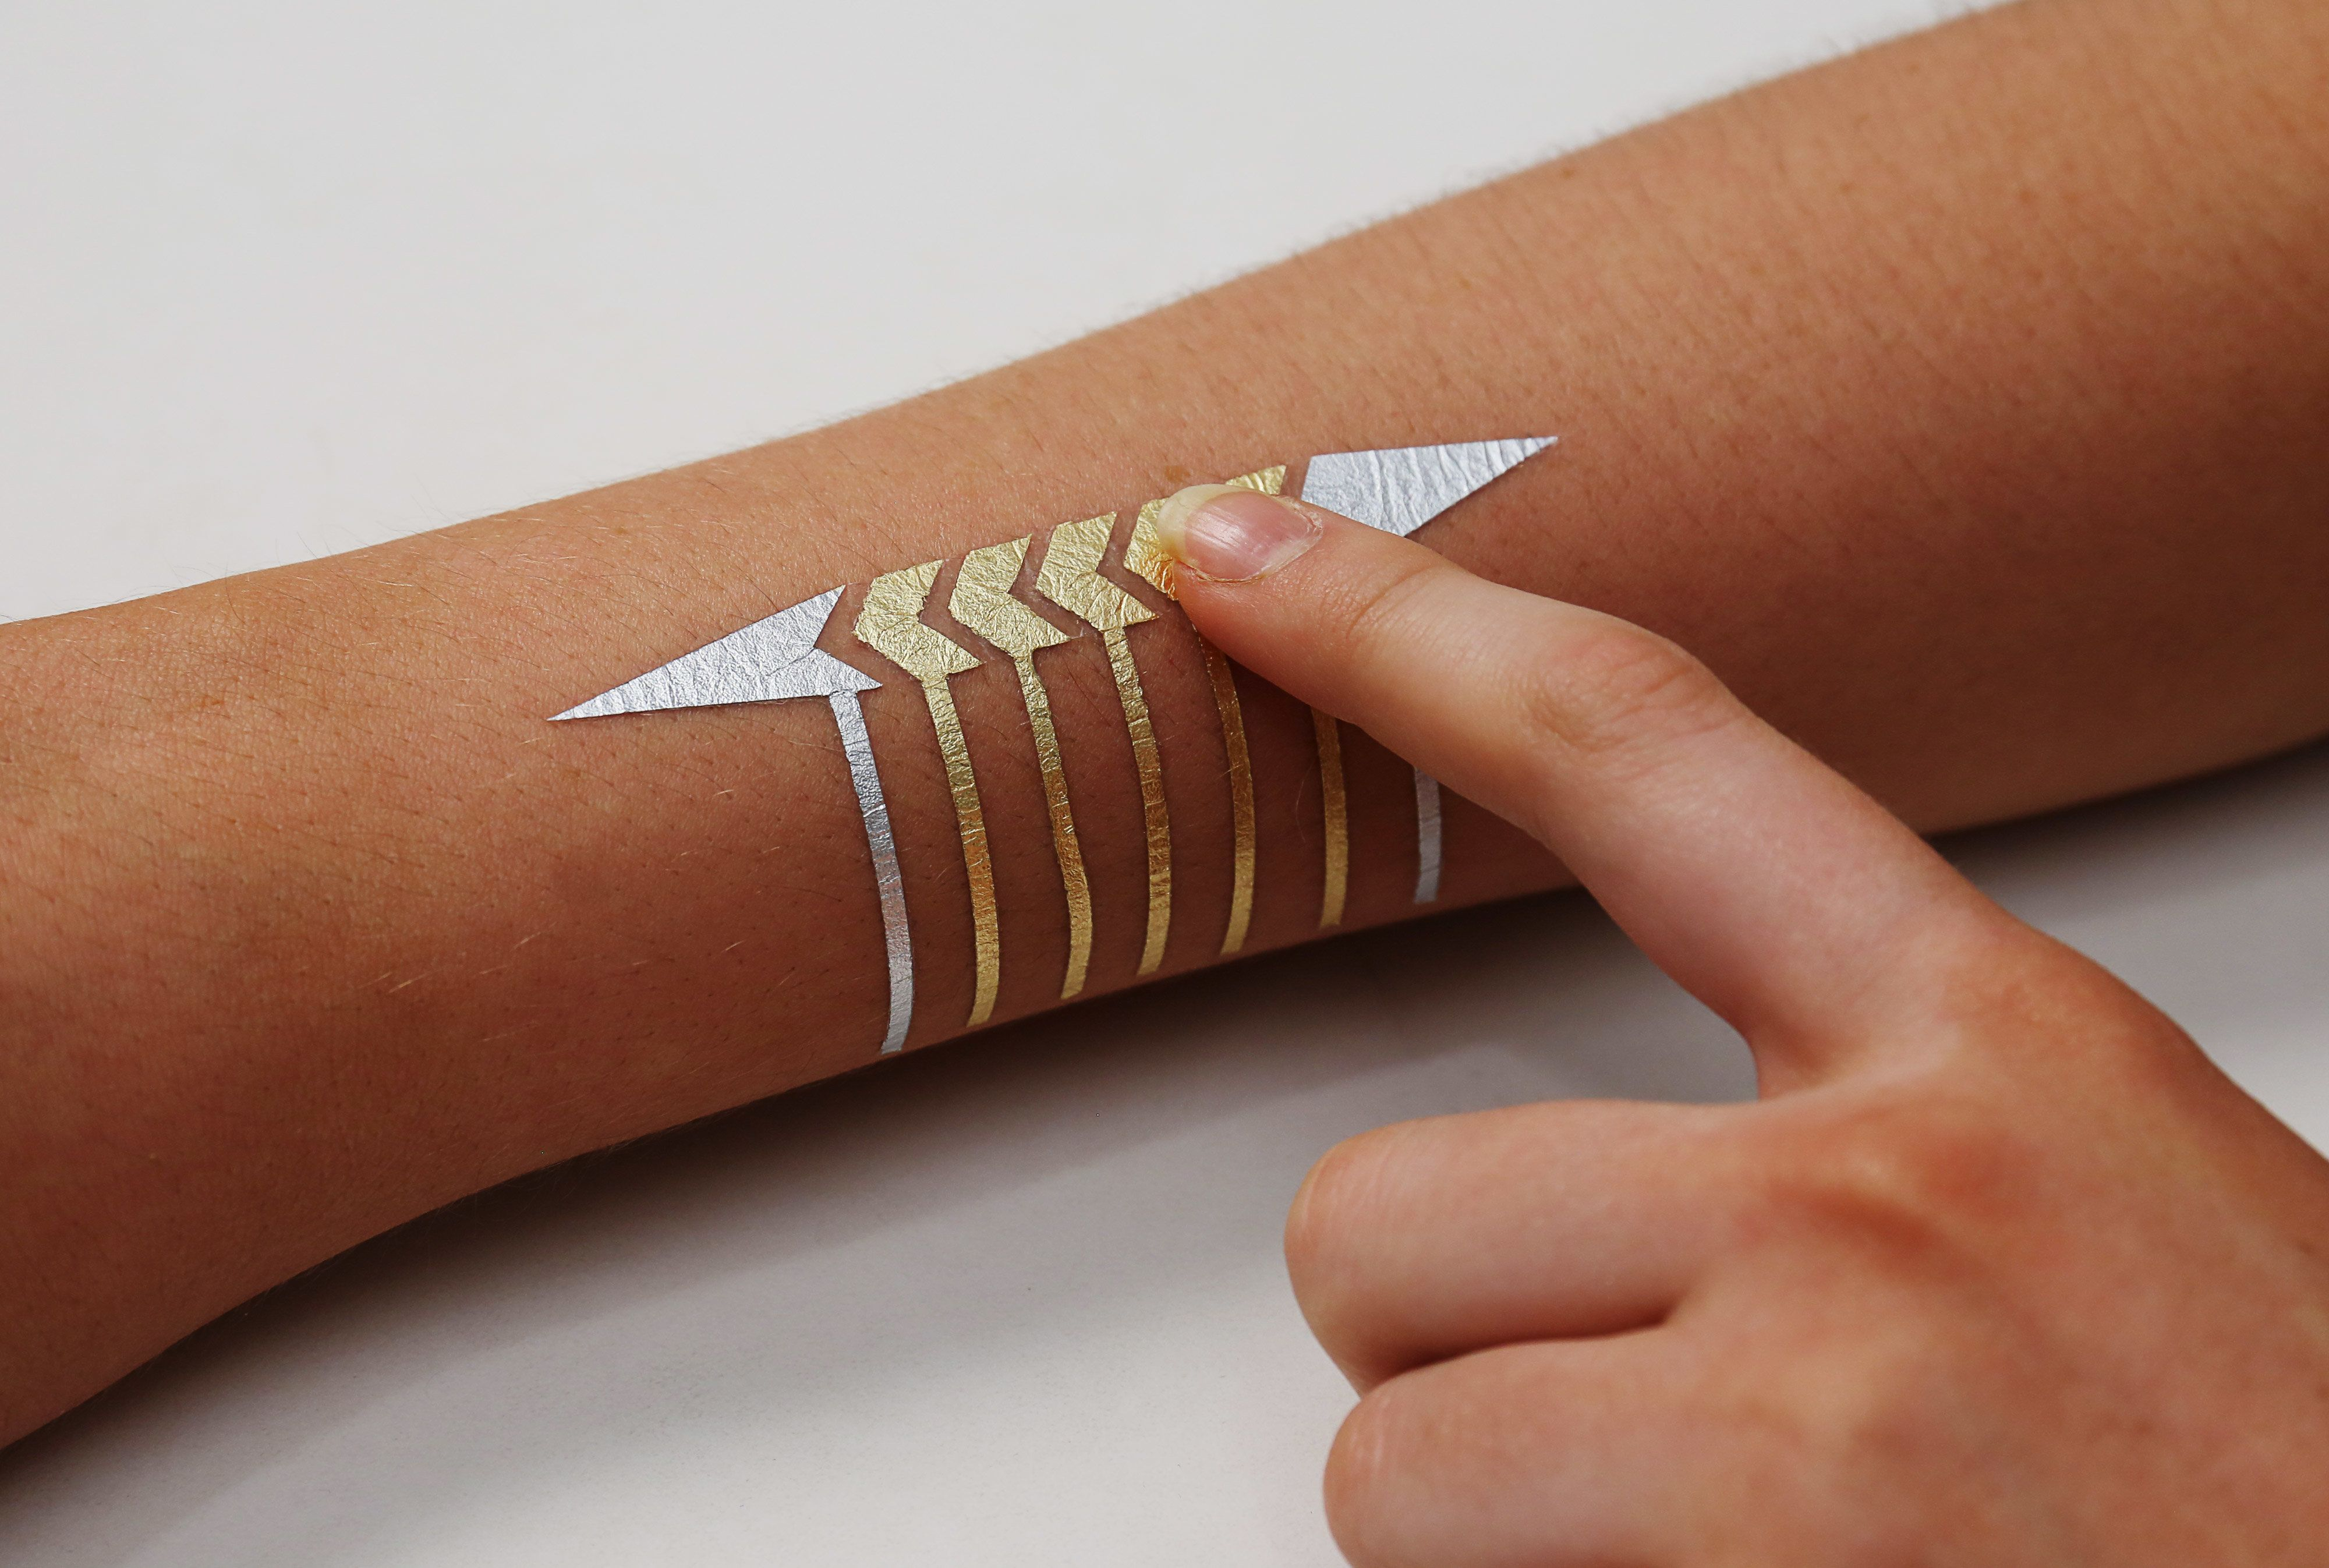 MIT's Temporary Tattoos Are The Wearable Gadgets Of The